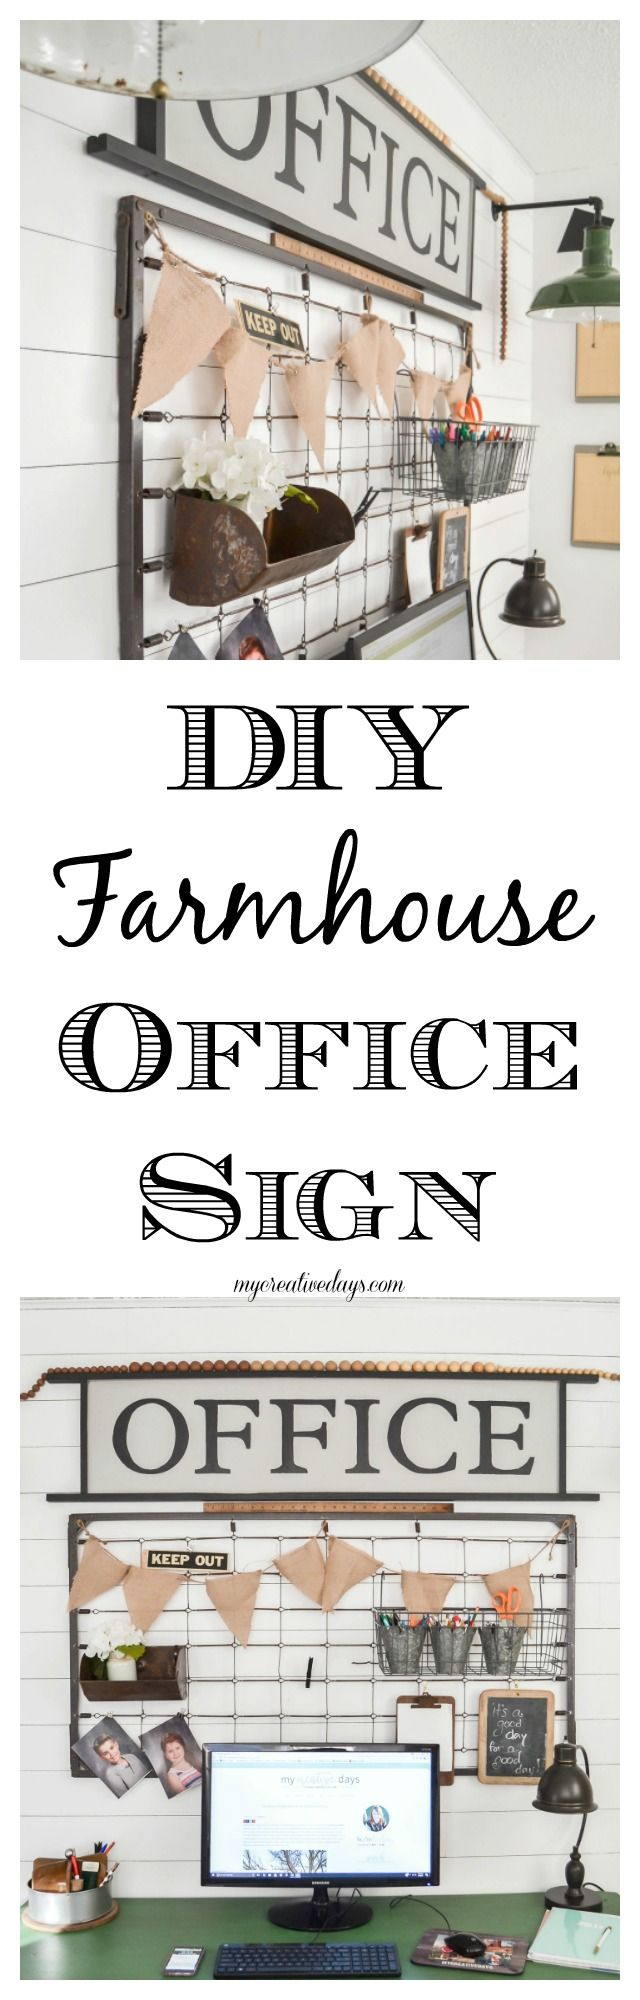 DIY Farmhouse Office Sign